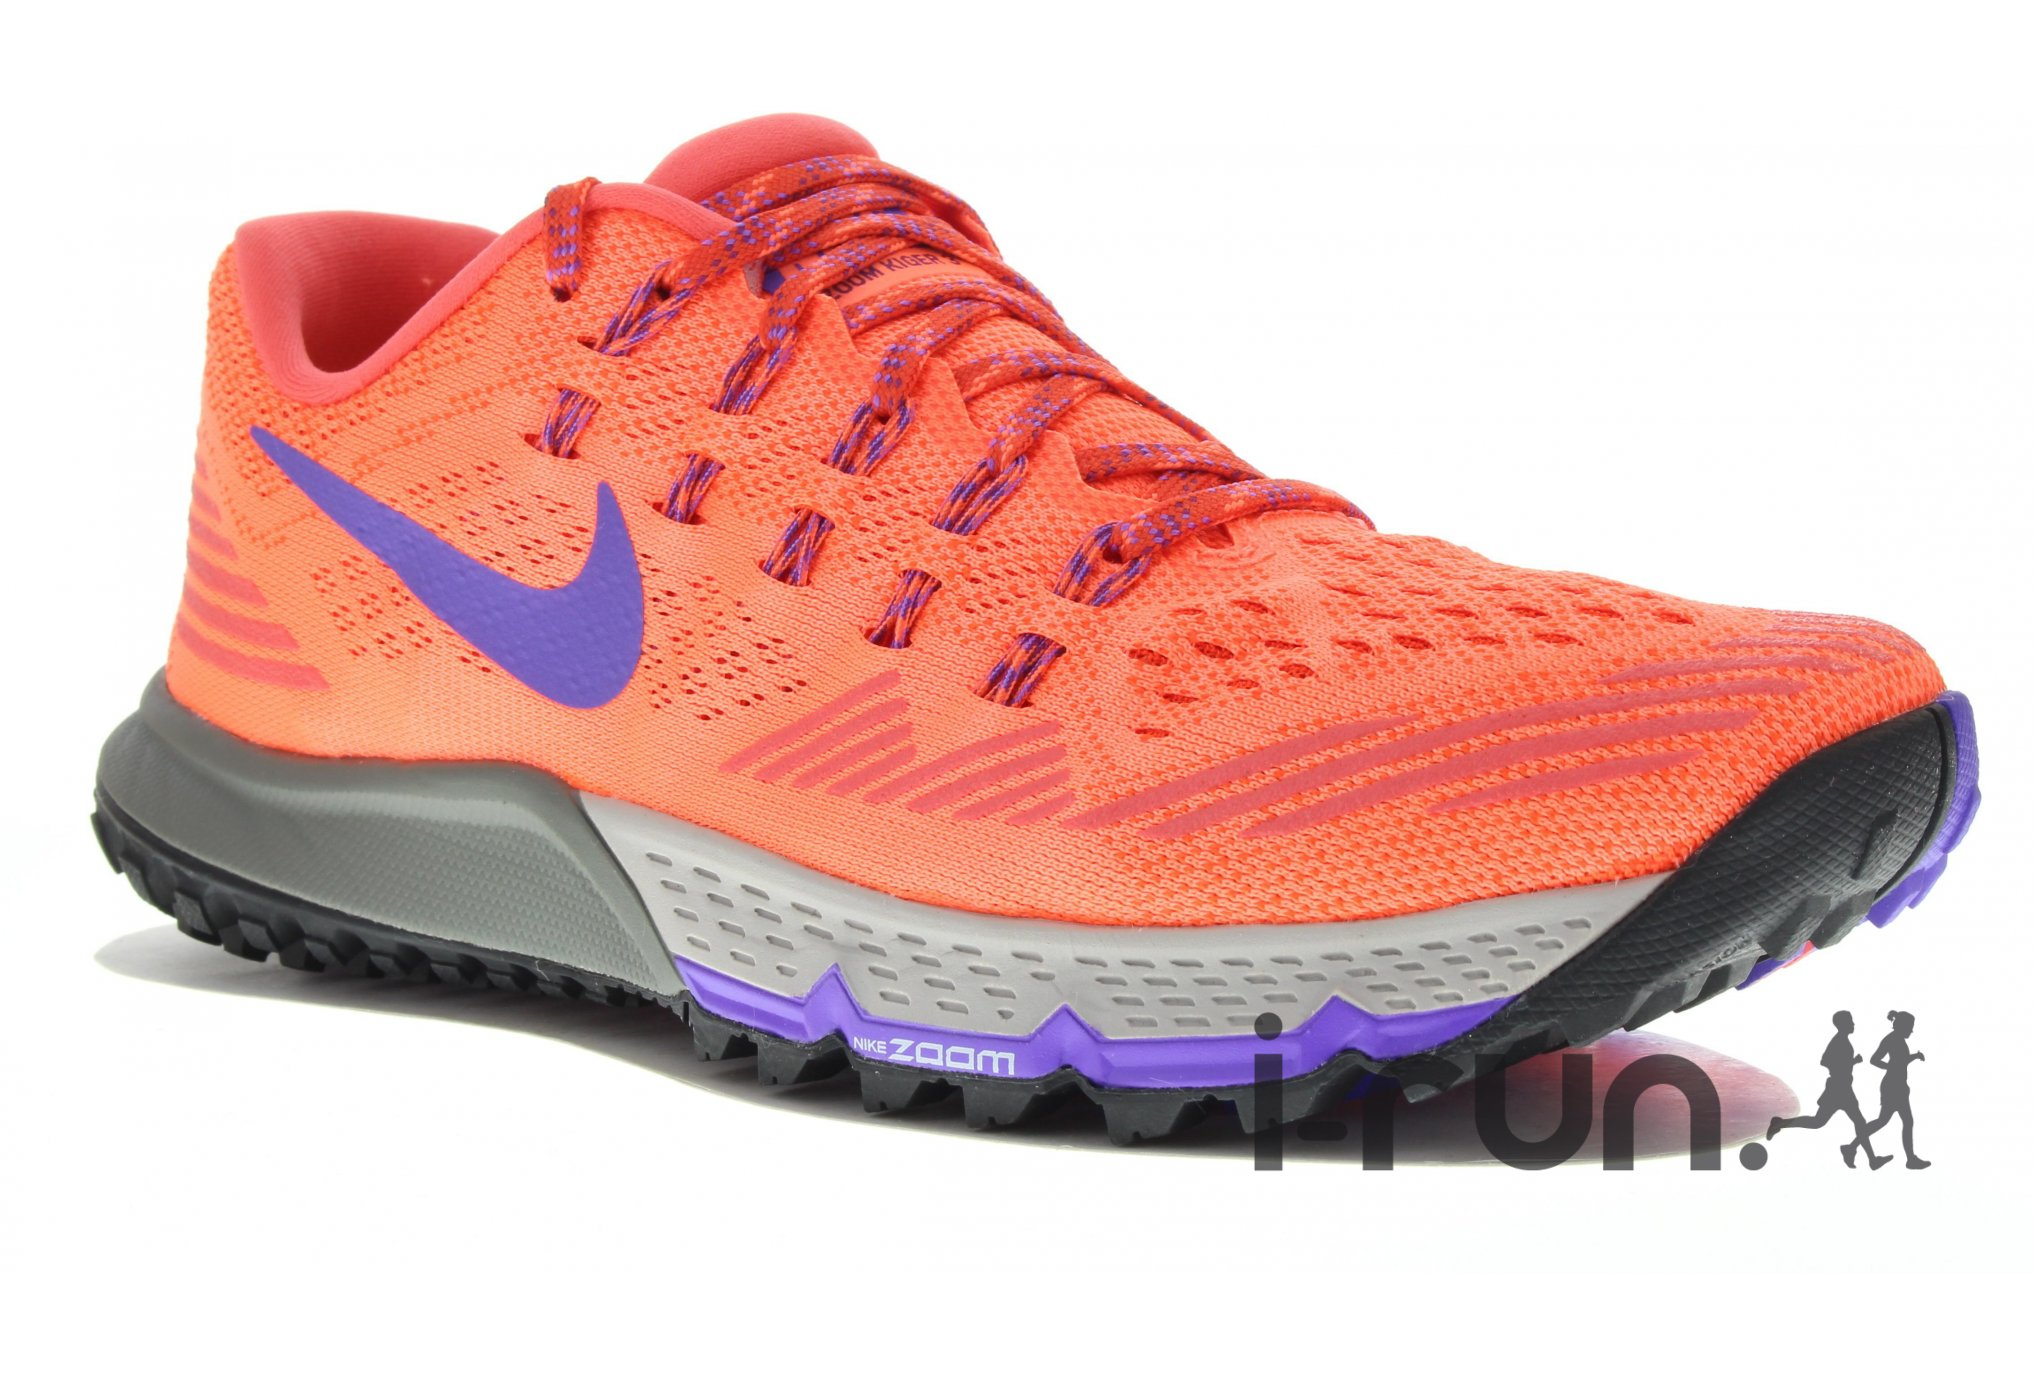 Nike Zoom Terra Kiger 3 W Chaussures running femme